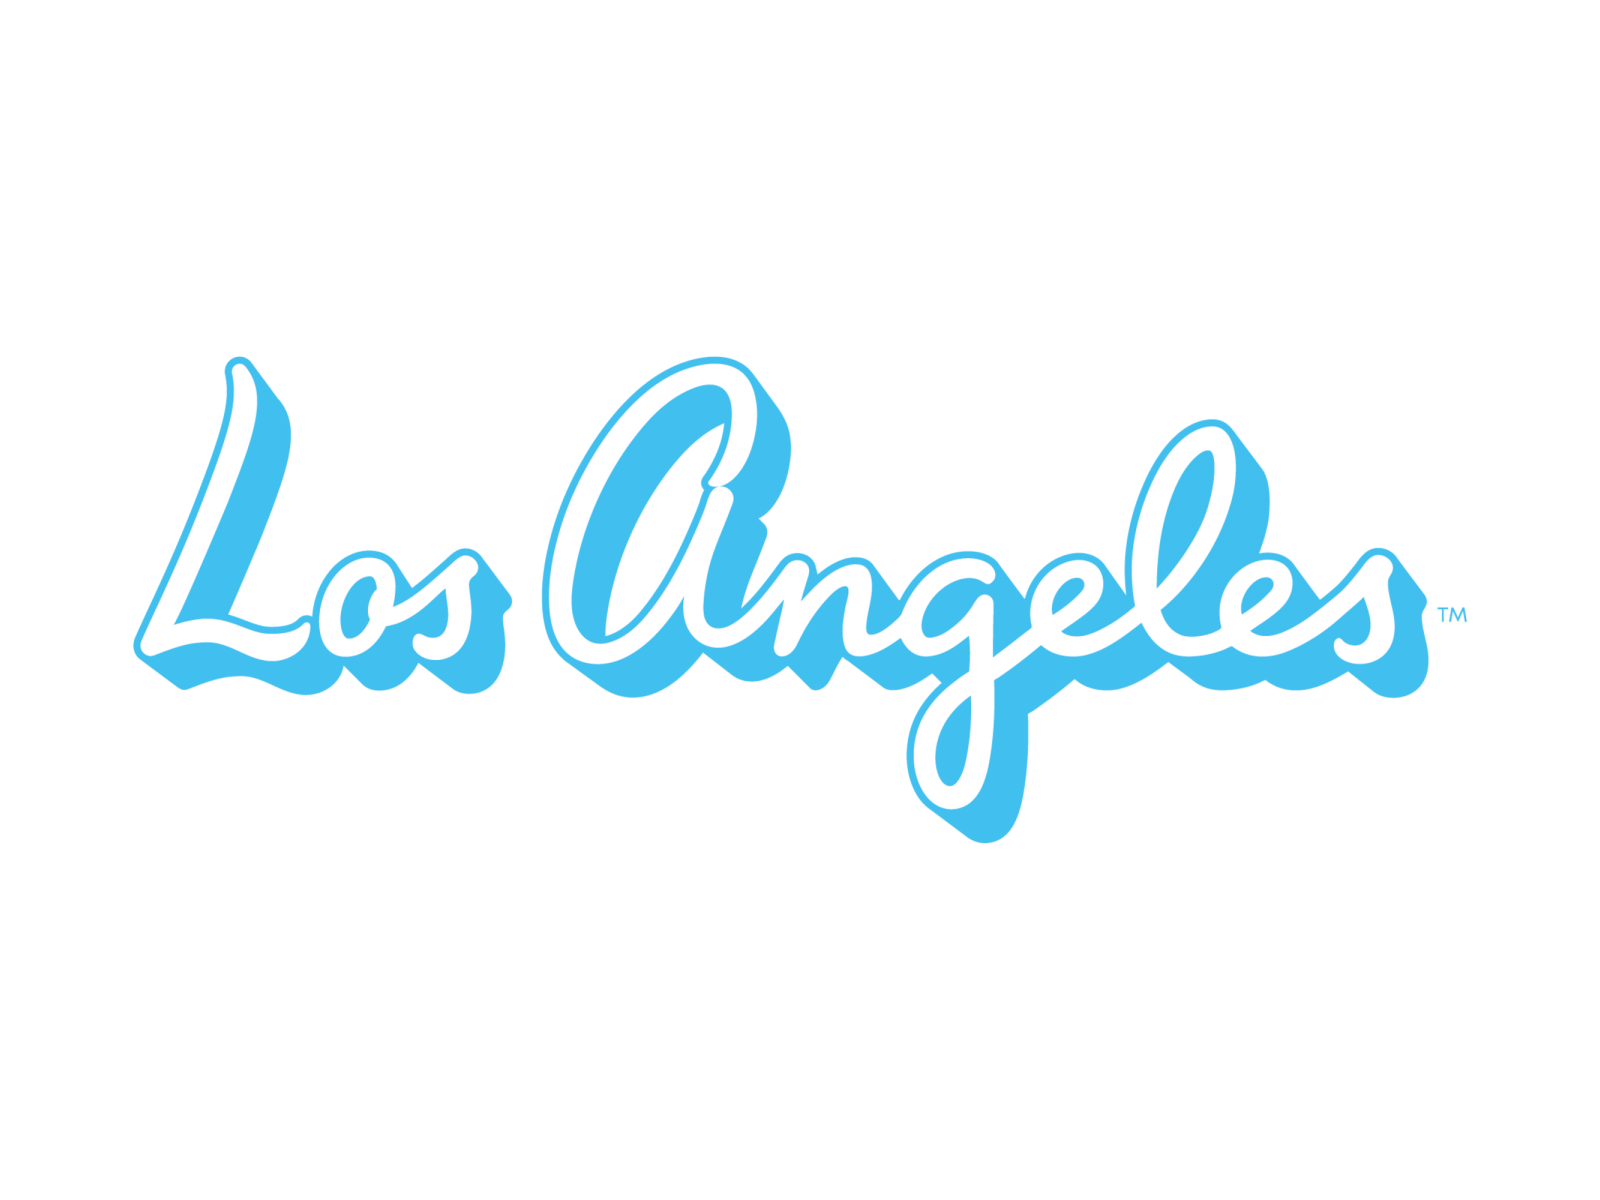 Los Angeles Tourism Logo